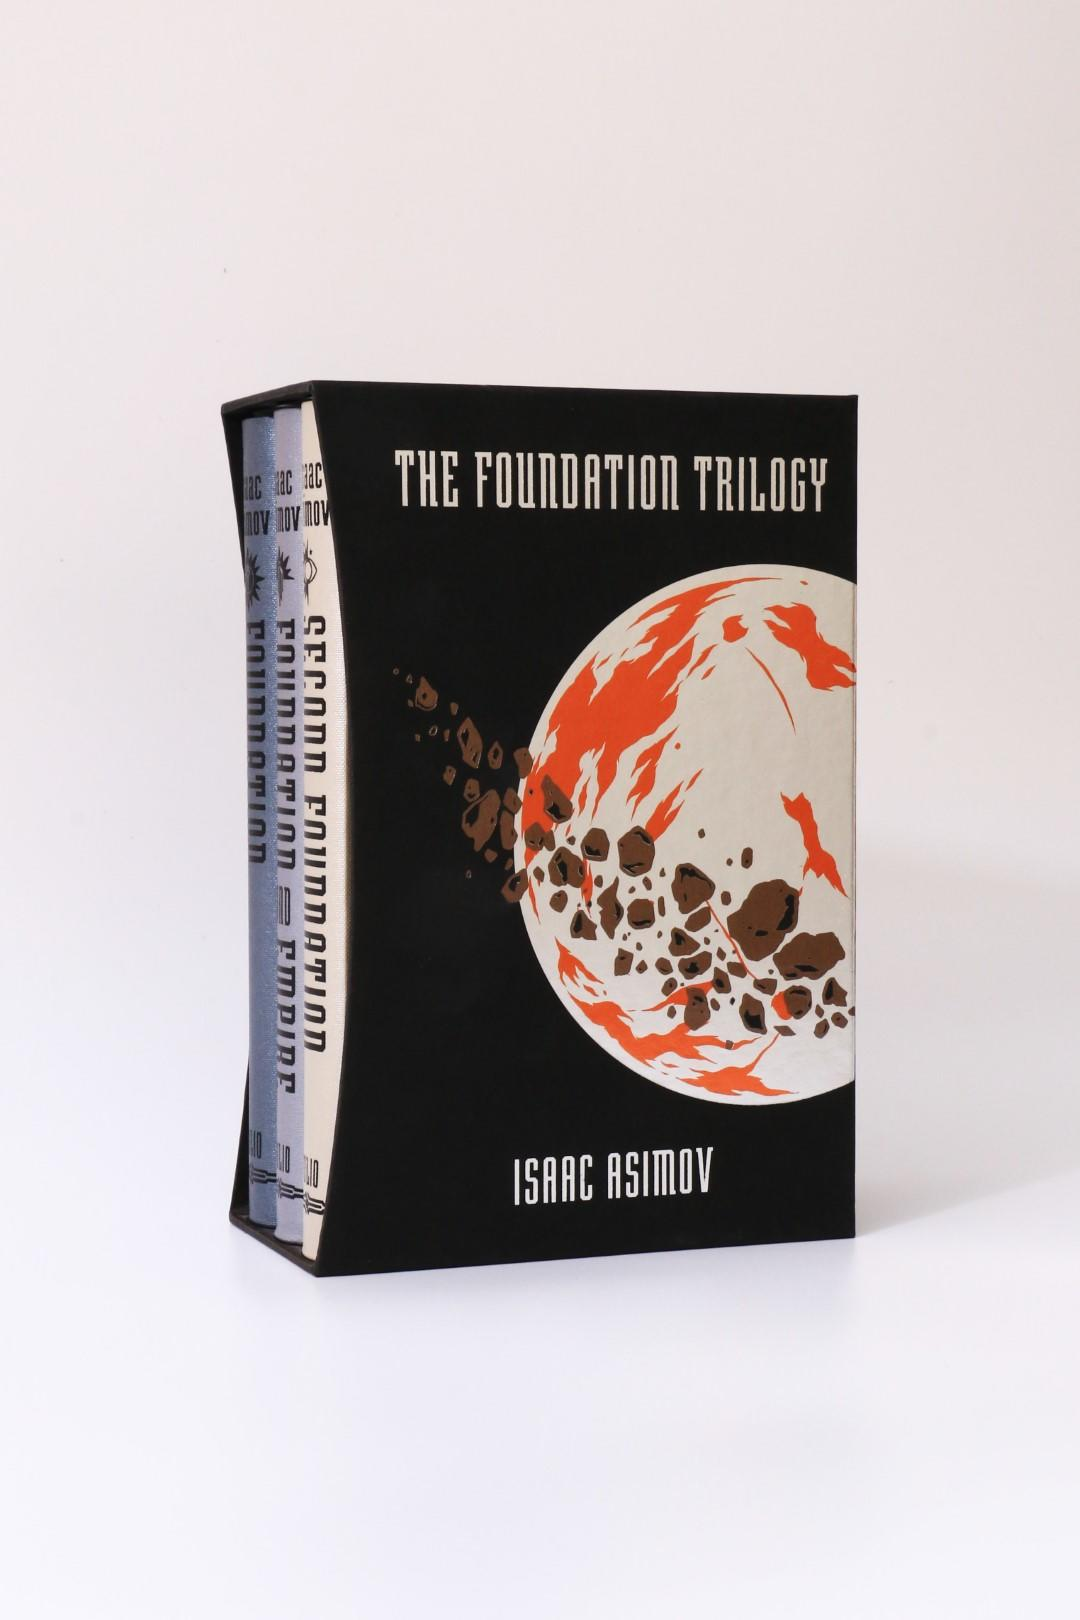 Isaac Asimov - The Foundation Trilogy [comprising] Foundation, Foundation & Empire, and Second Foundation - Folio Society, 2016, First Thus.